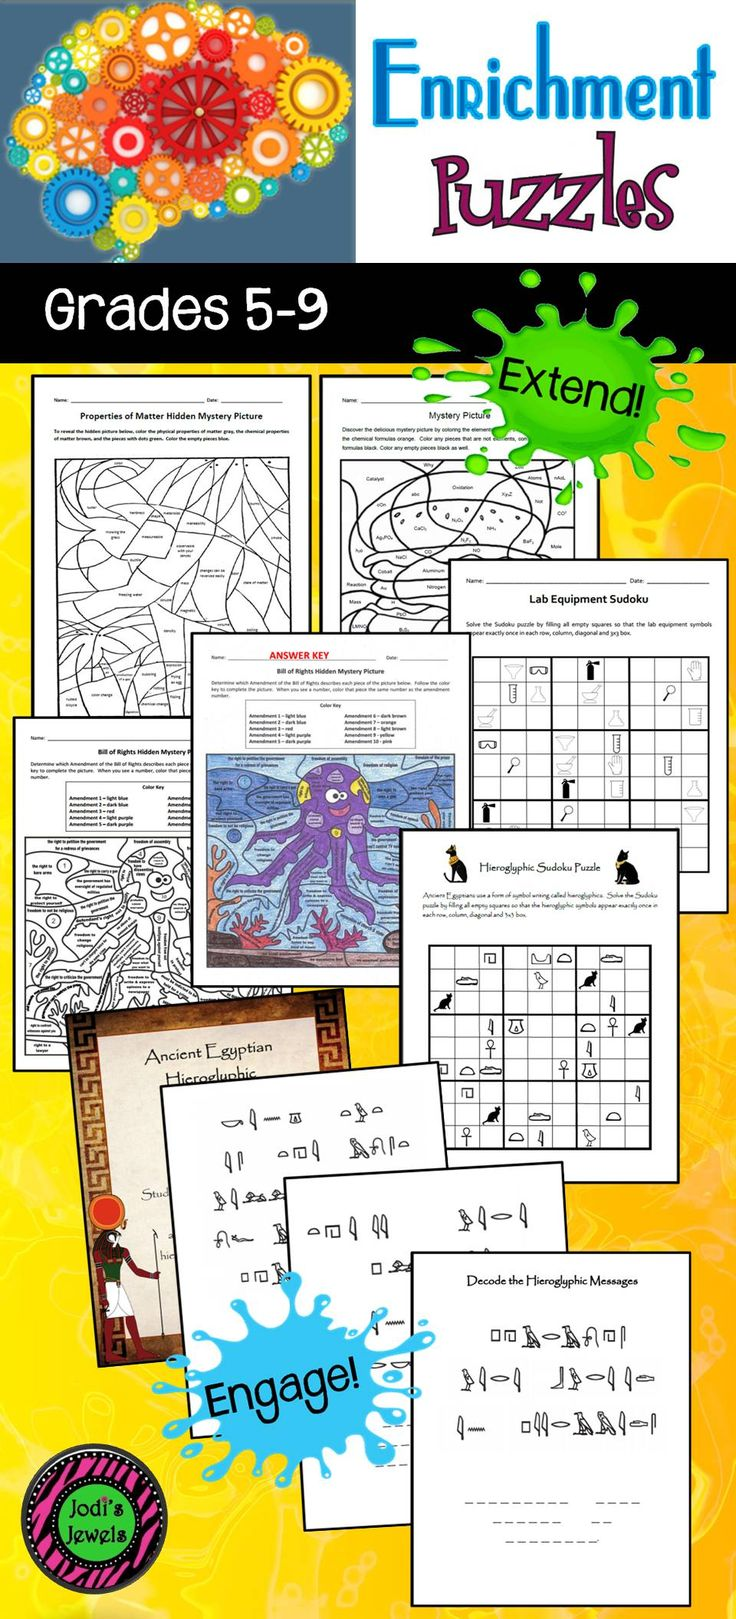 Worksheet Activity Village Sudoku 1000 ideas about web sudoku on pinterest hidden mystery pictures and decoding messages for science social studies are perfect grades 5